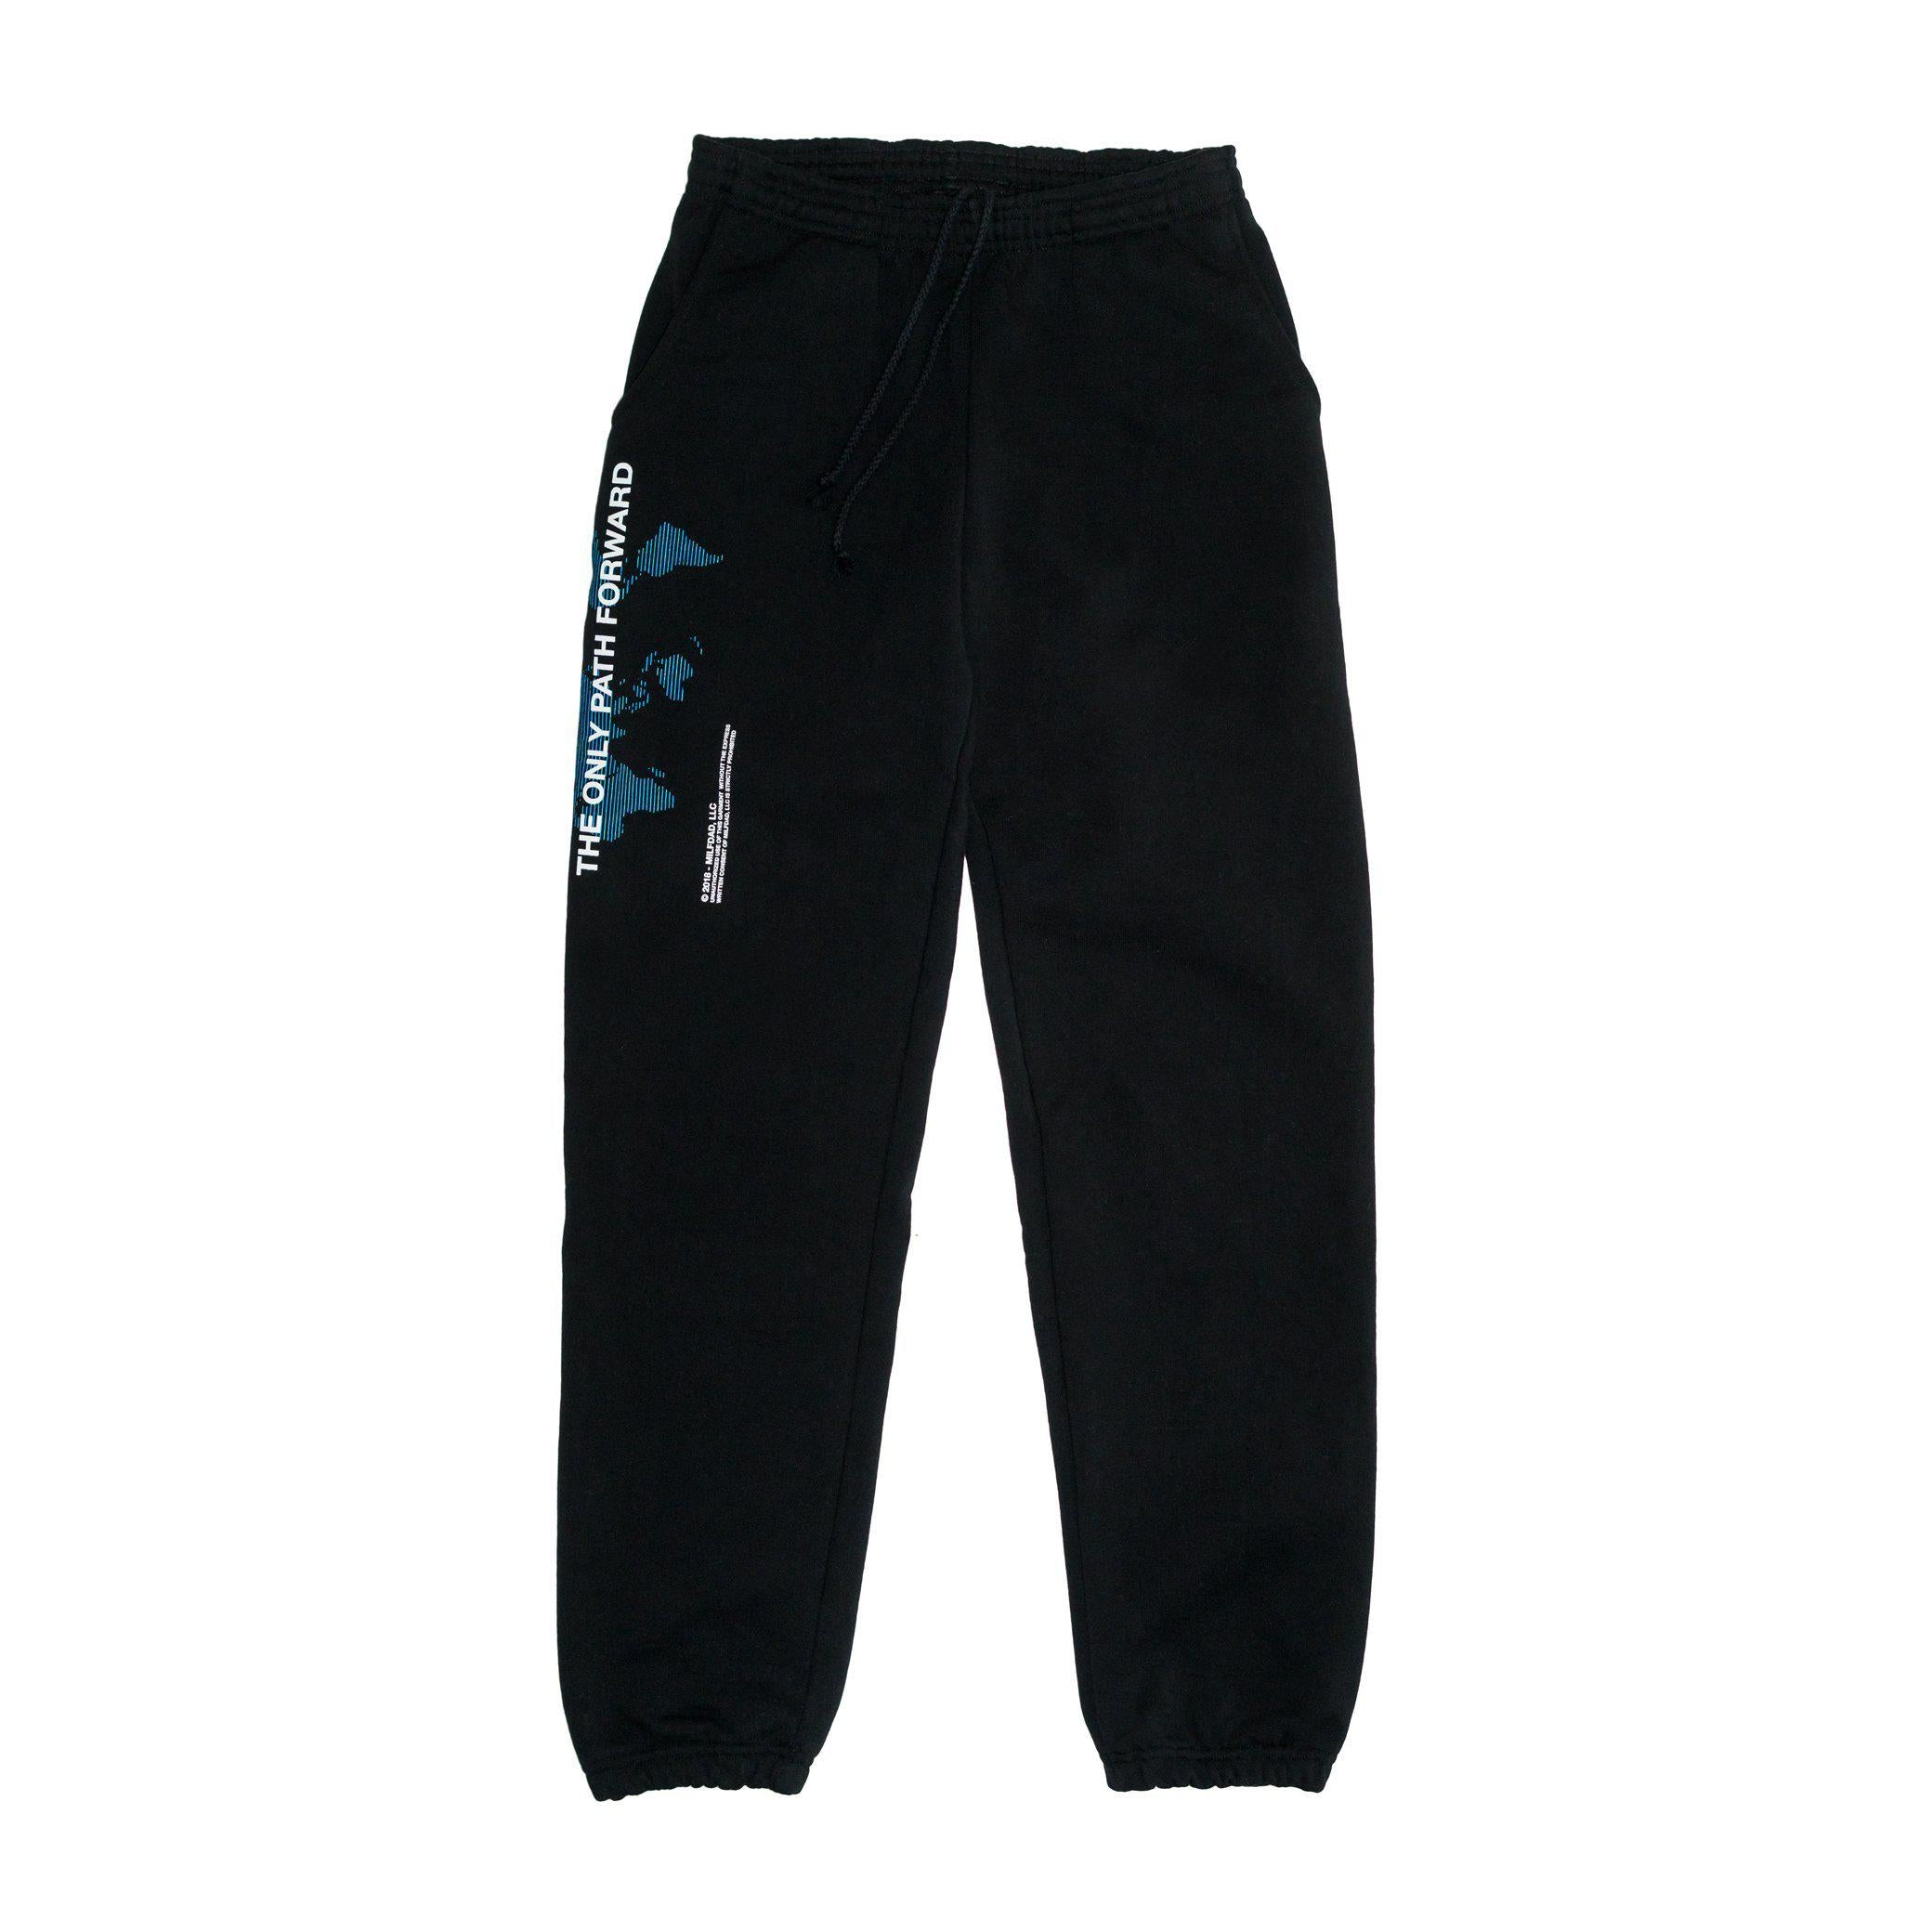 ONLY PATH SWEATPANT - BLACK-MILFDAD